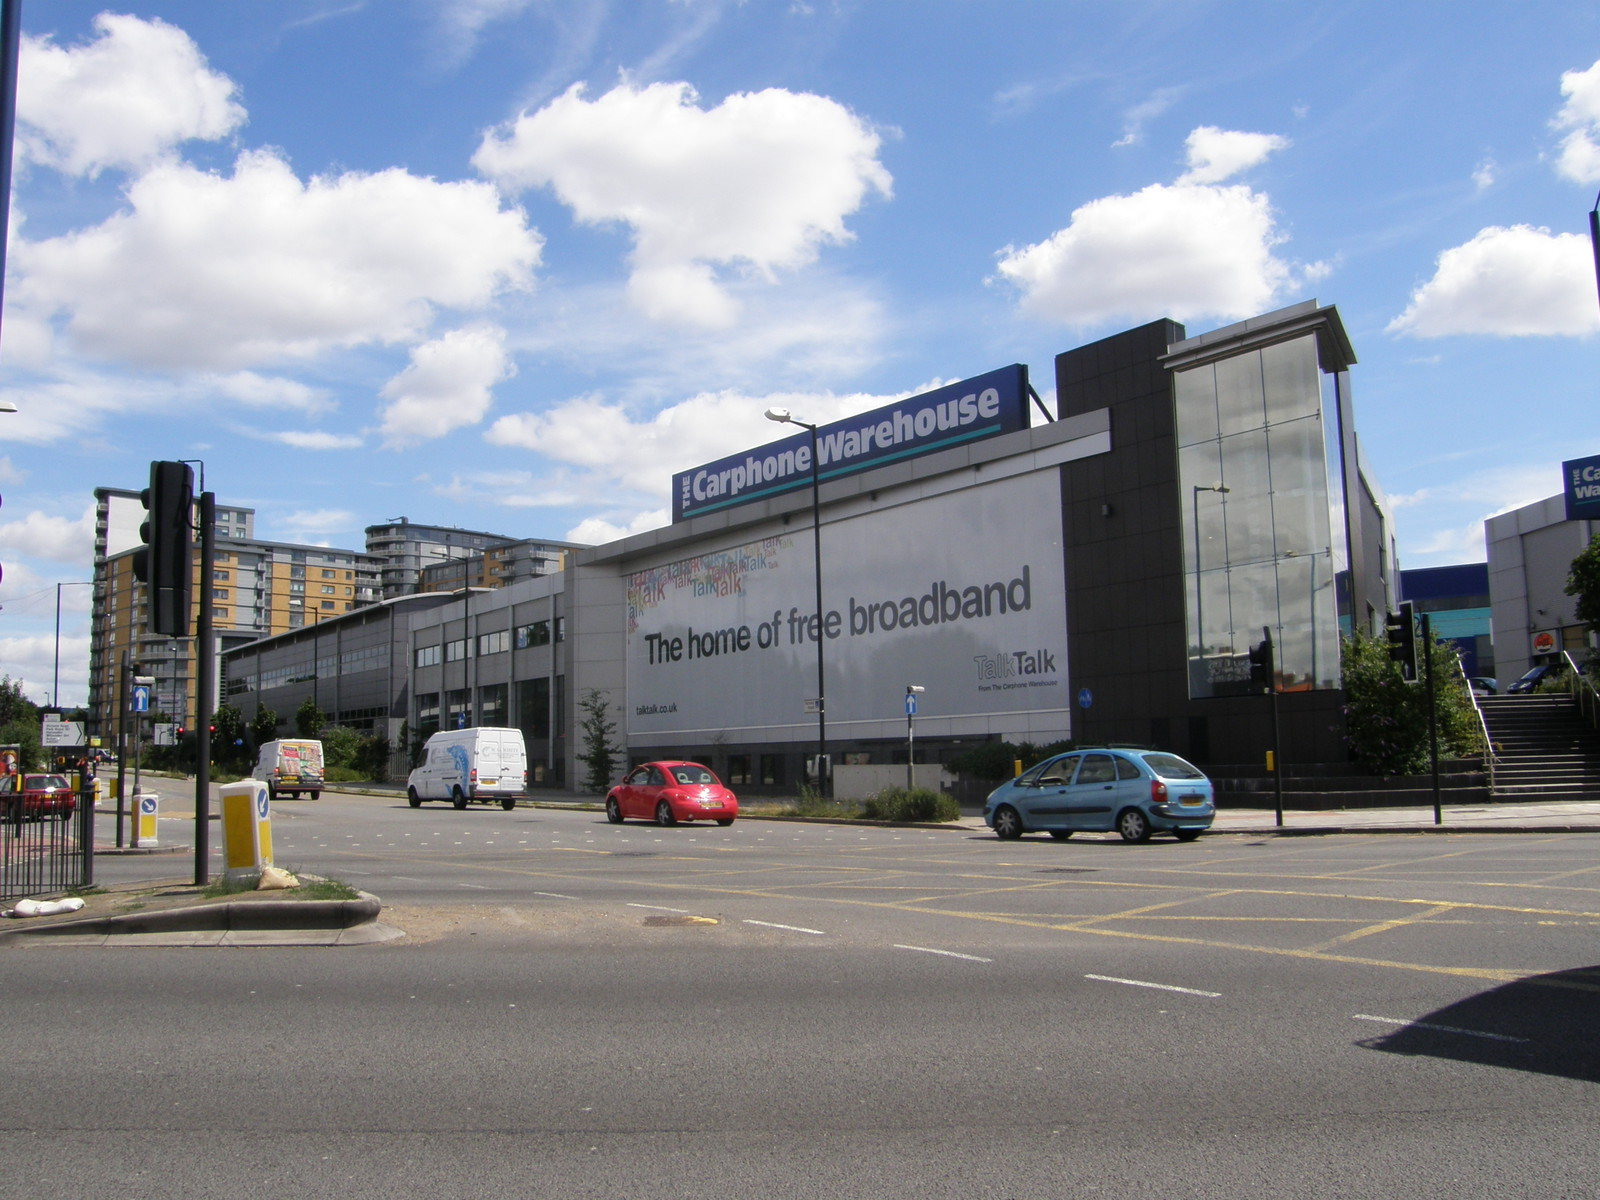 Image from Perivale and Ealing Broadway to Shepherd's Bush